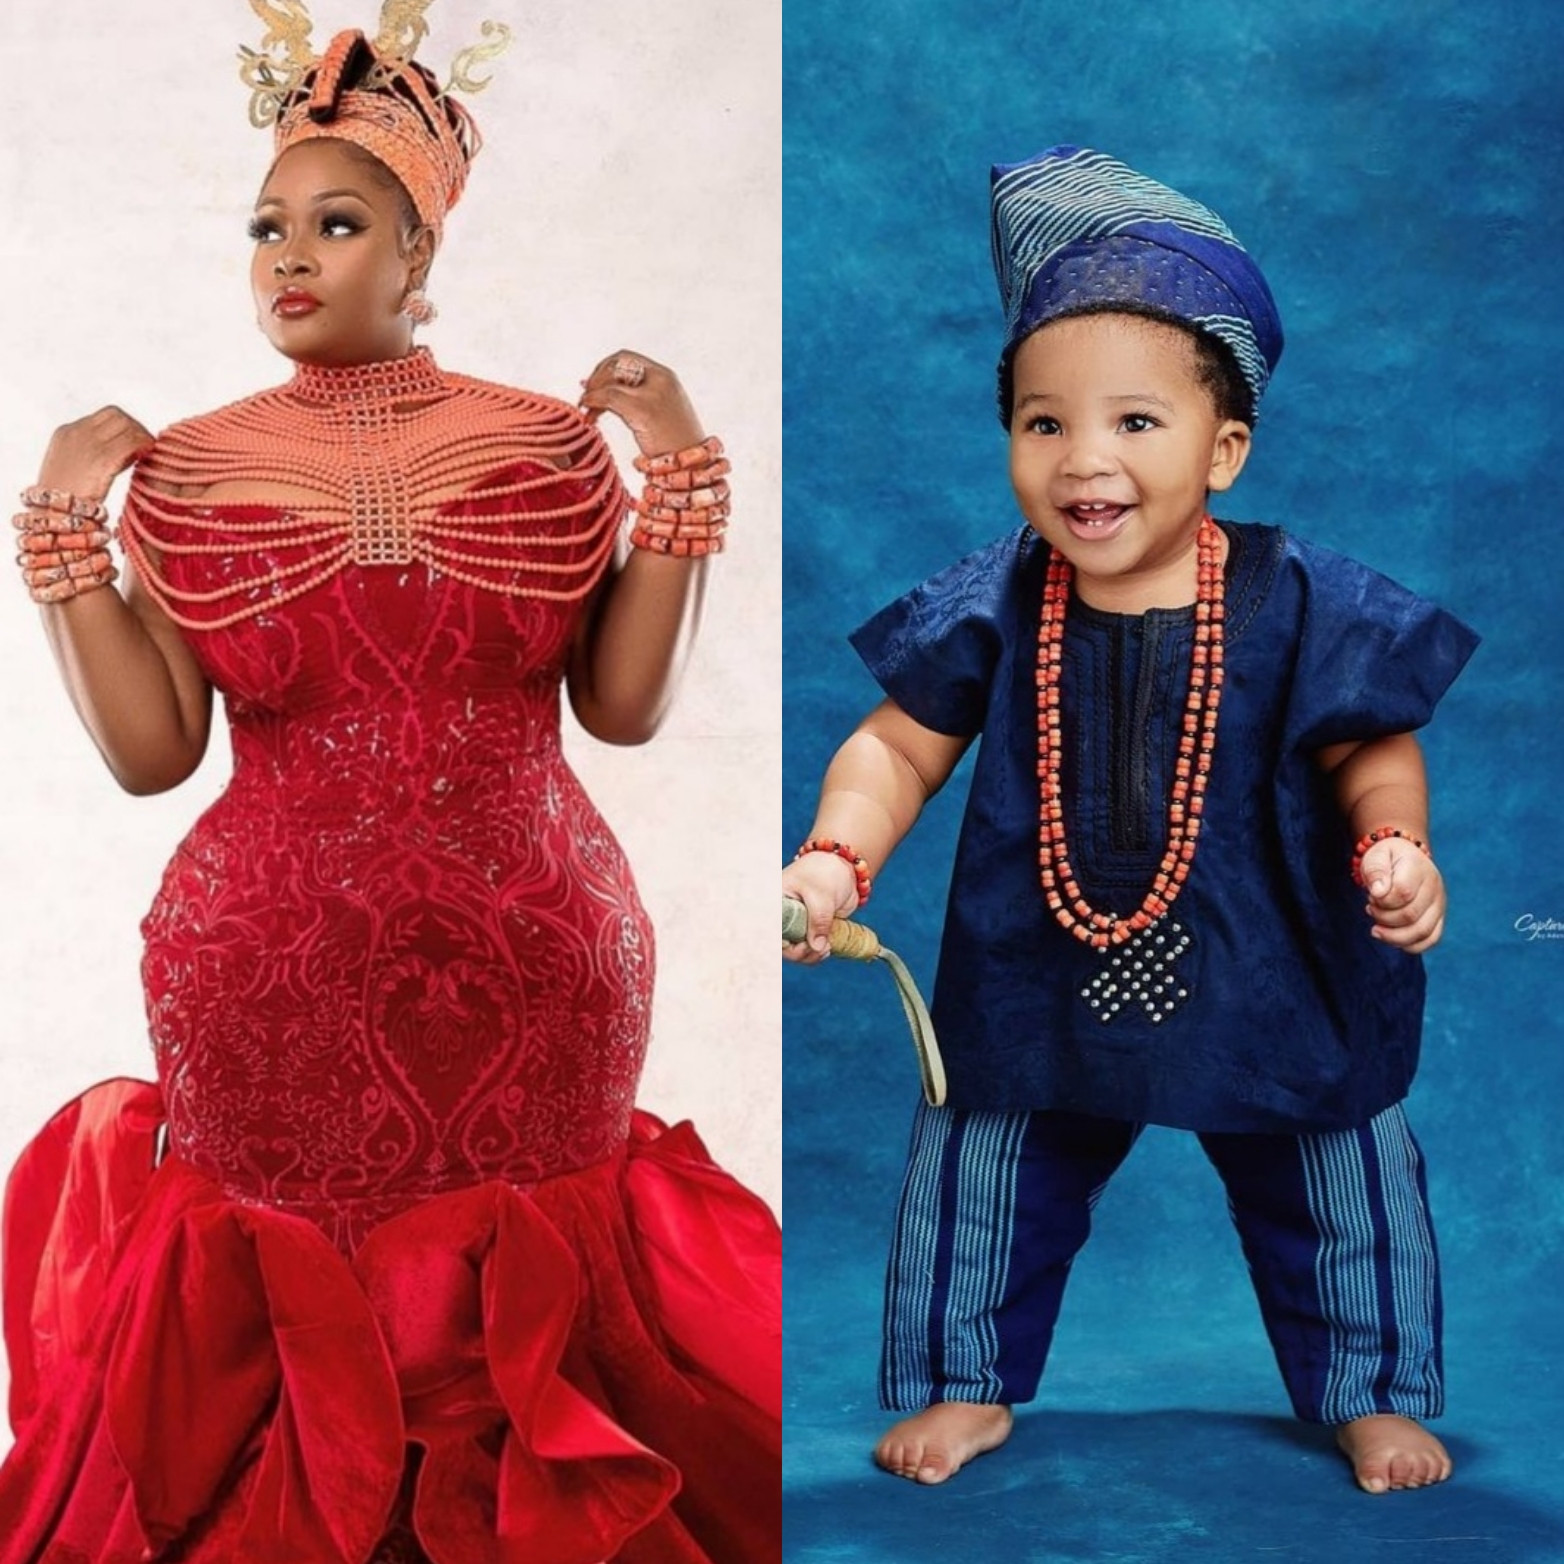 Toolz and her baby